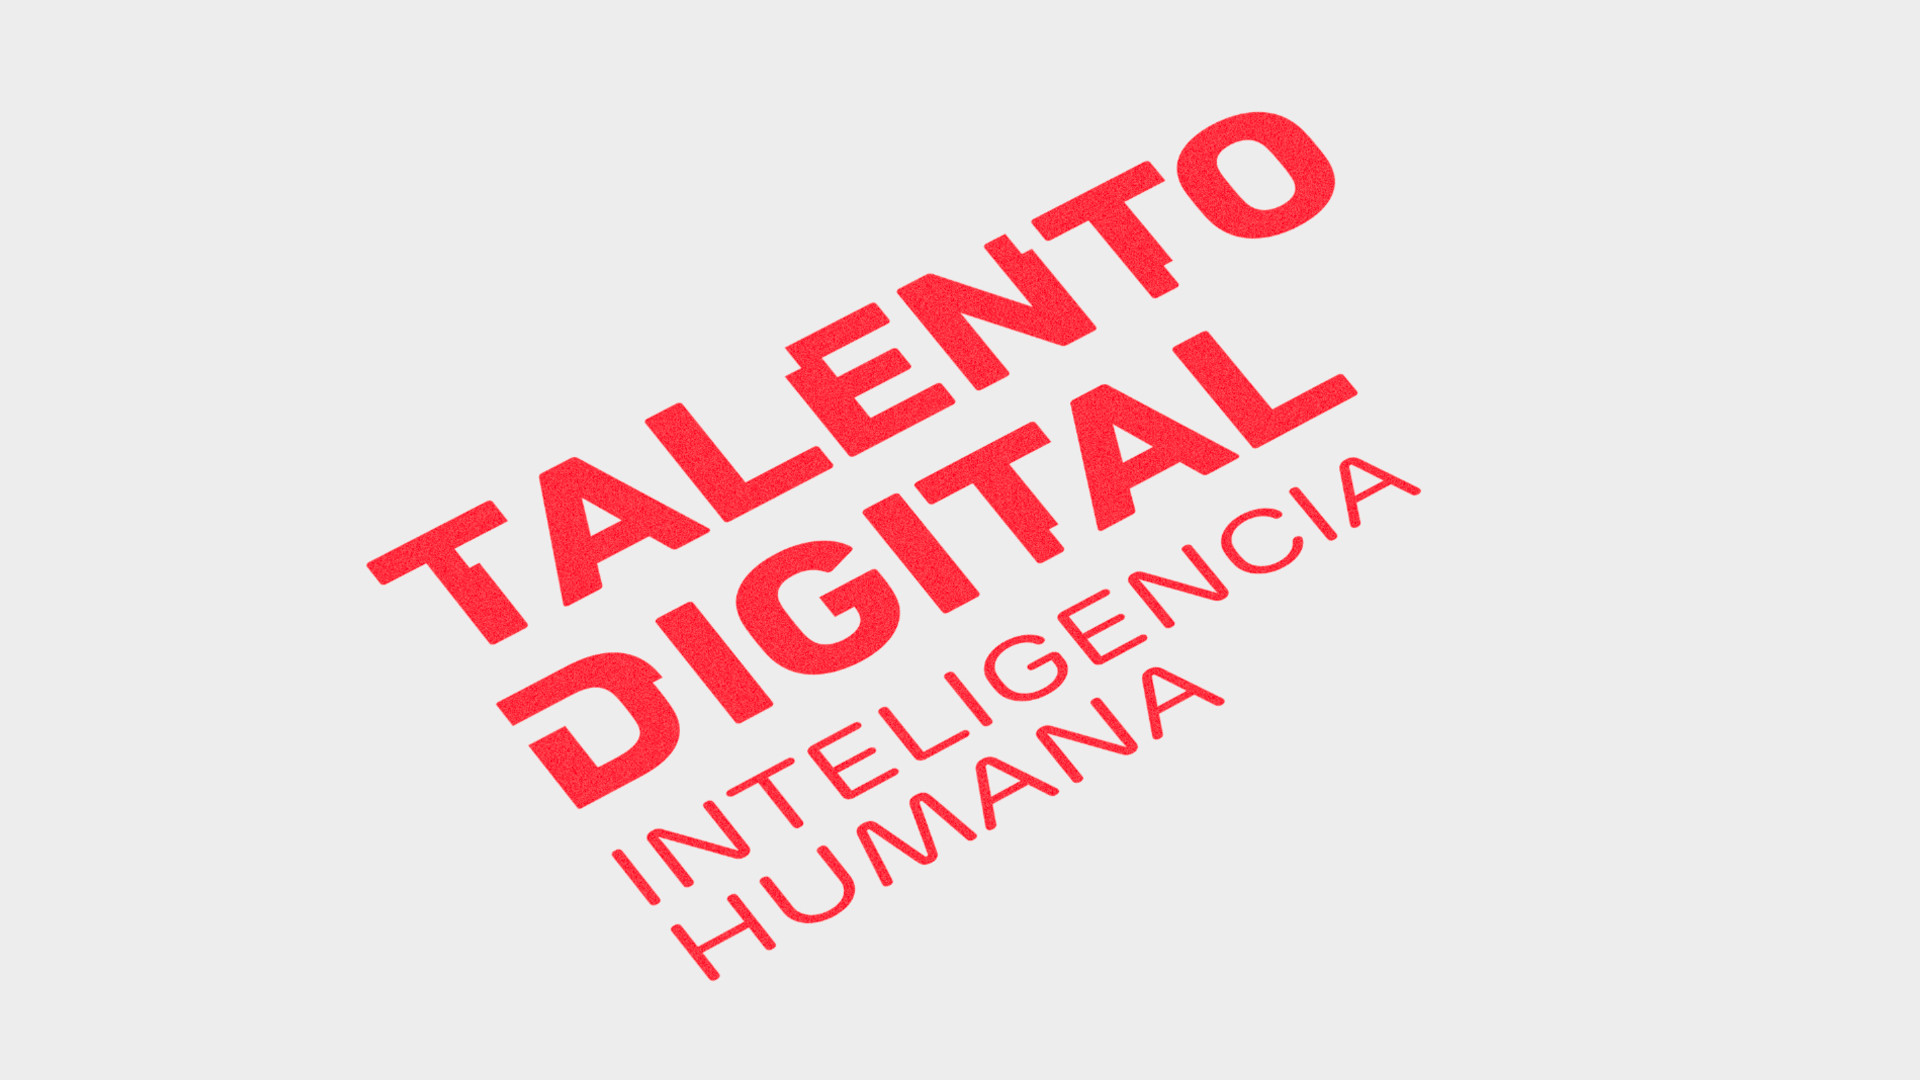 TALENTO DIGITAL.010.jpeg